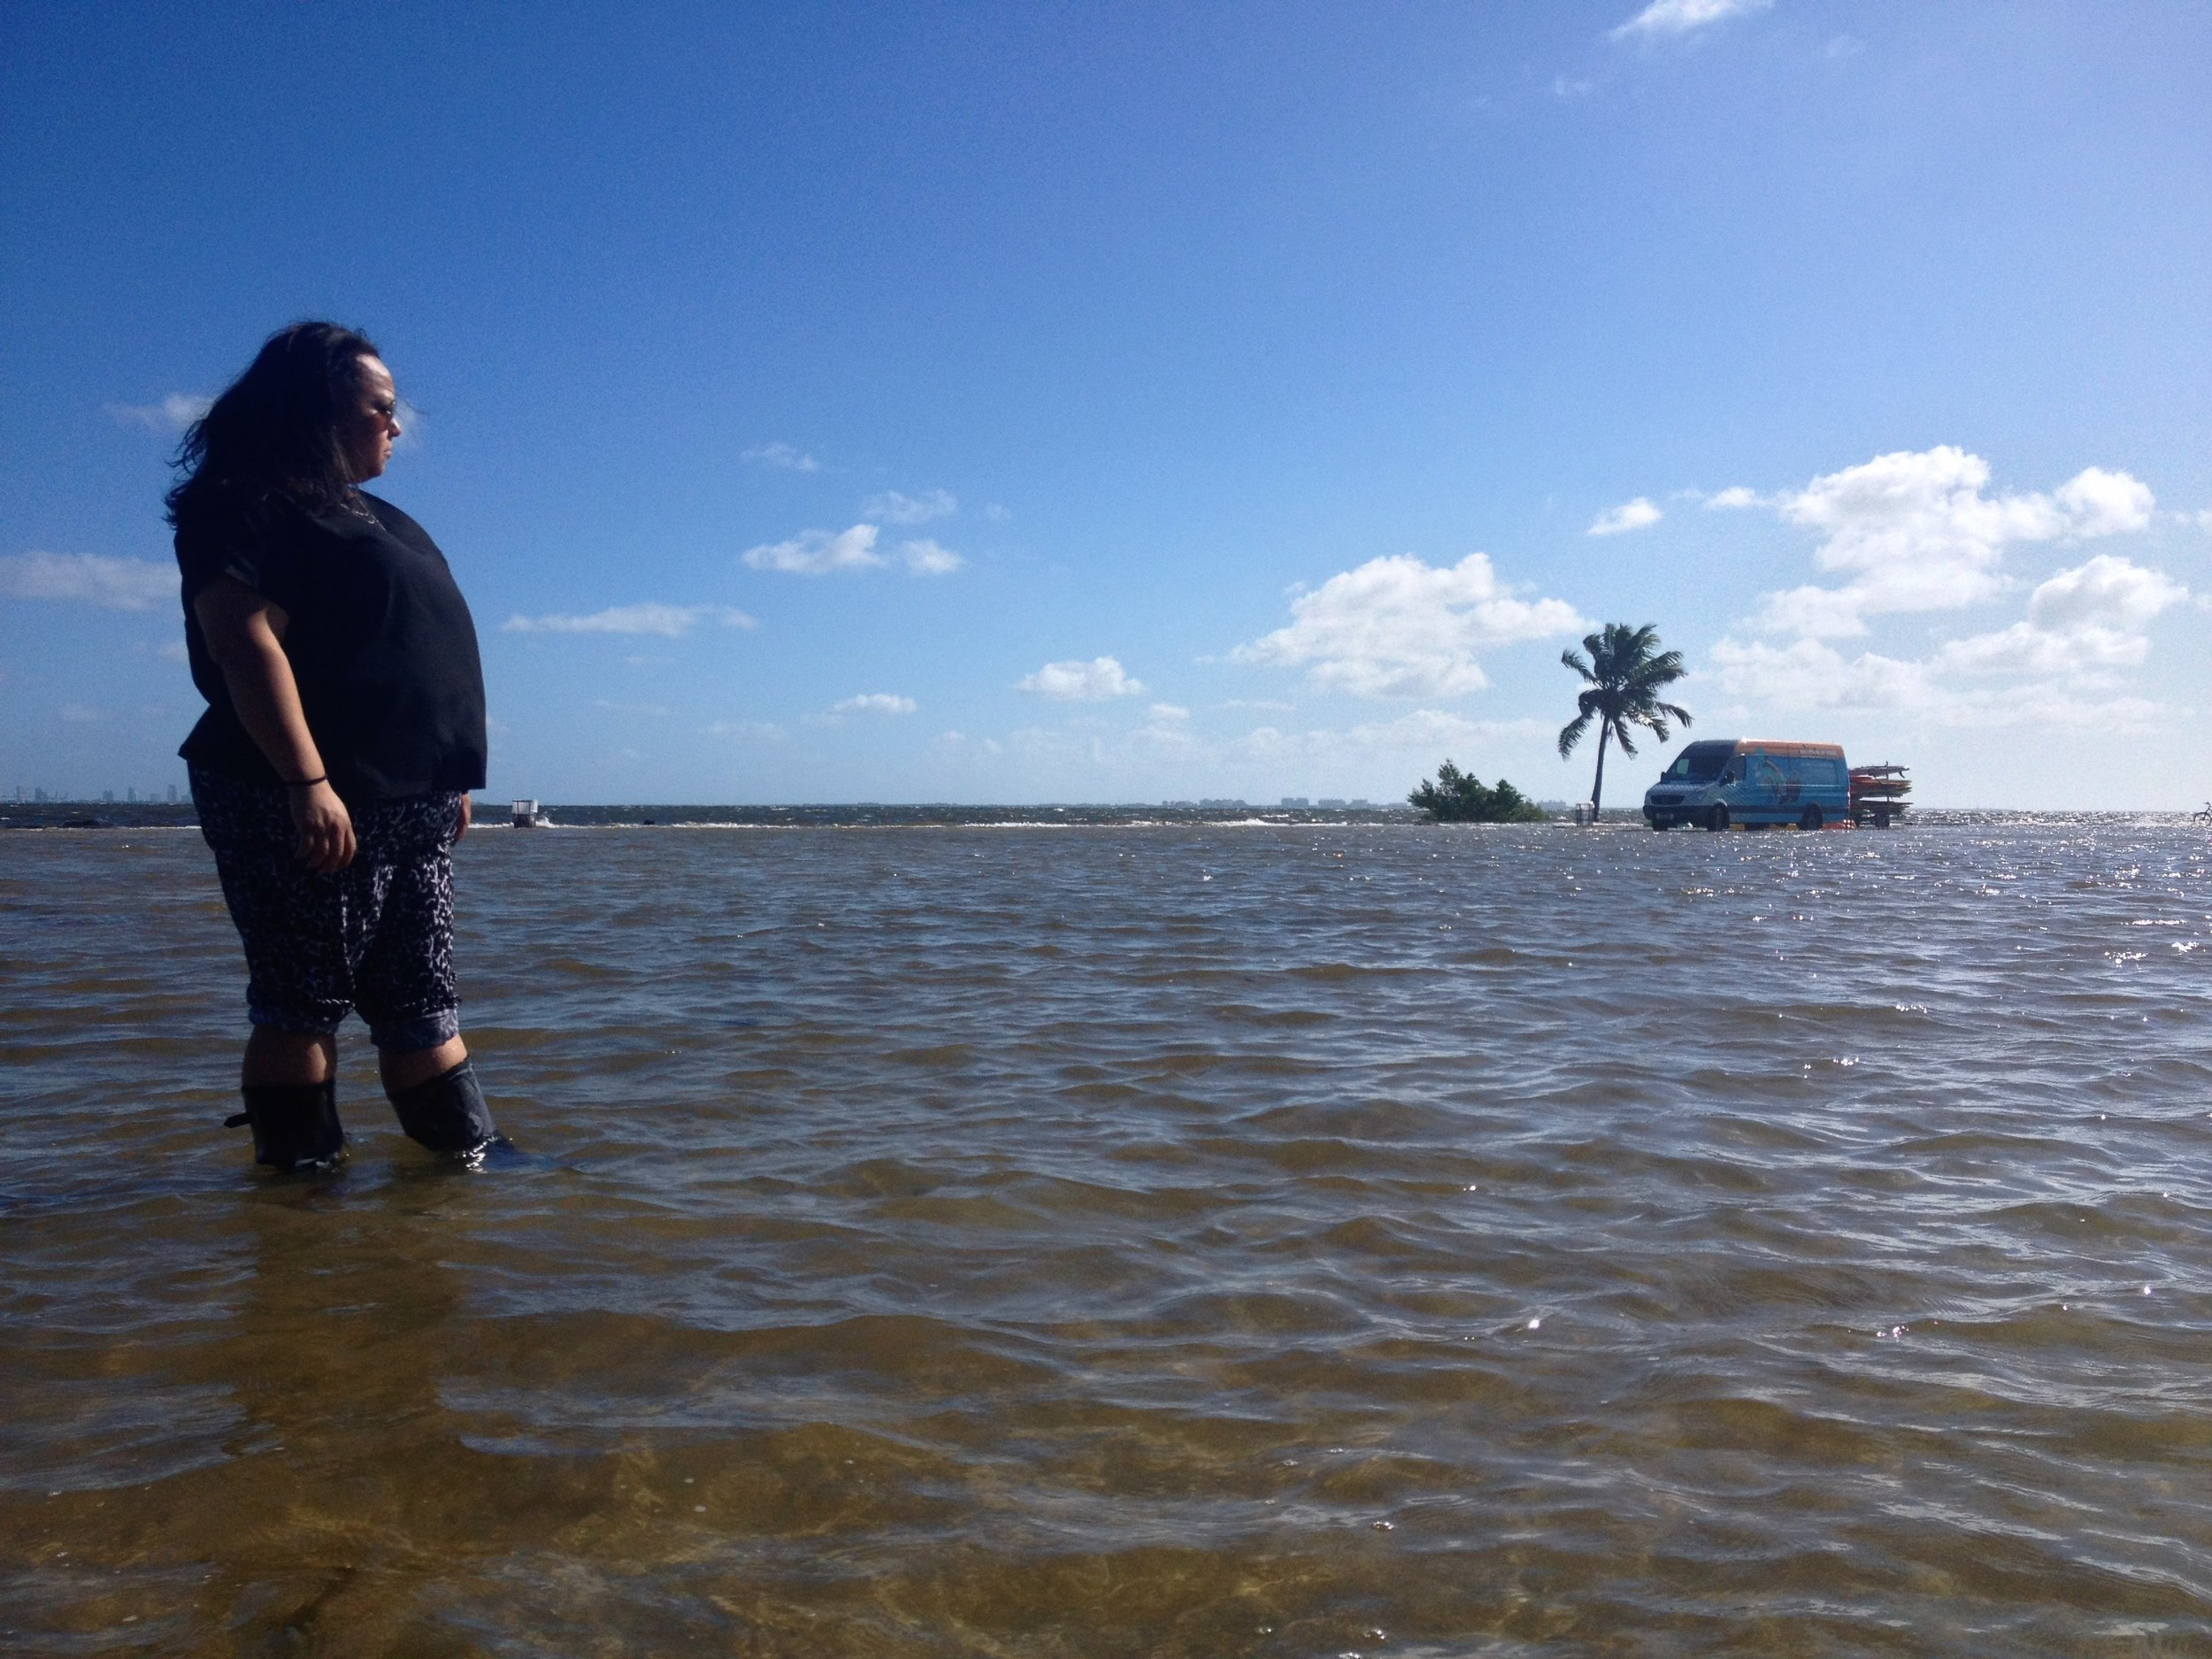 Karina in her rainboots during the king tides flooding event of October 2016. Photo: Dayna Reggero, Climate Listening Project.